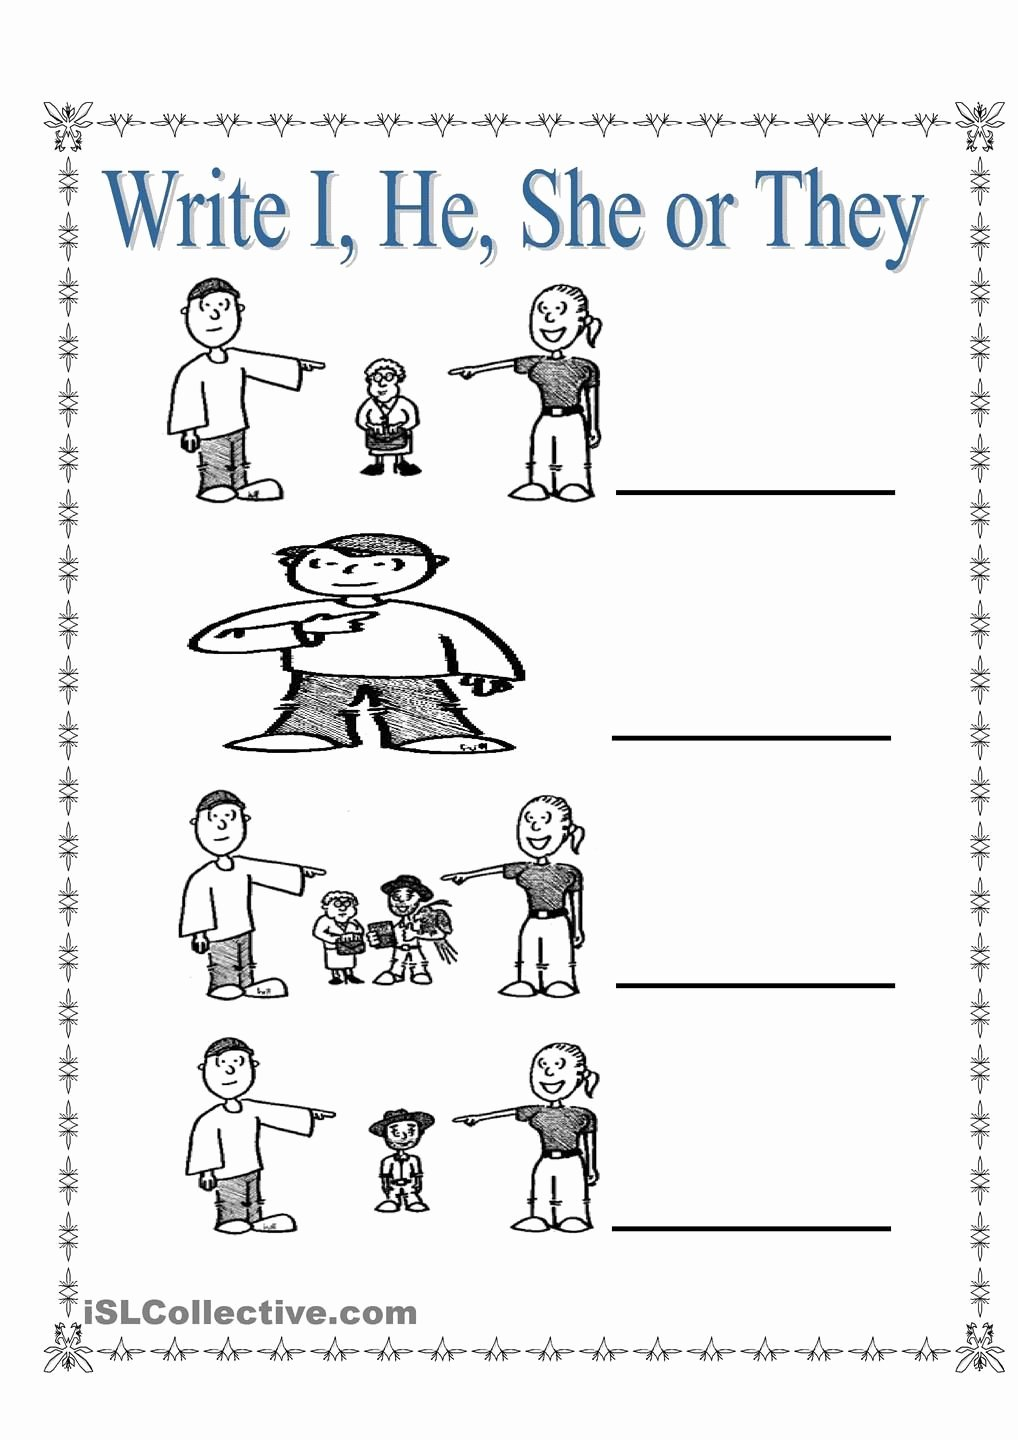 Personal Pronouns Worksheets for Preschoolers Printable Personal Pronouns I She He and they